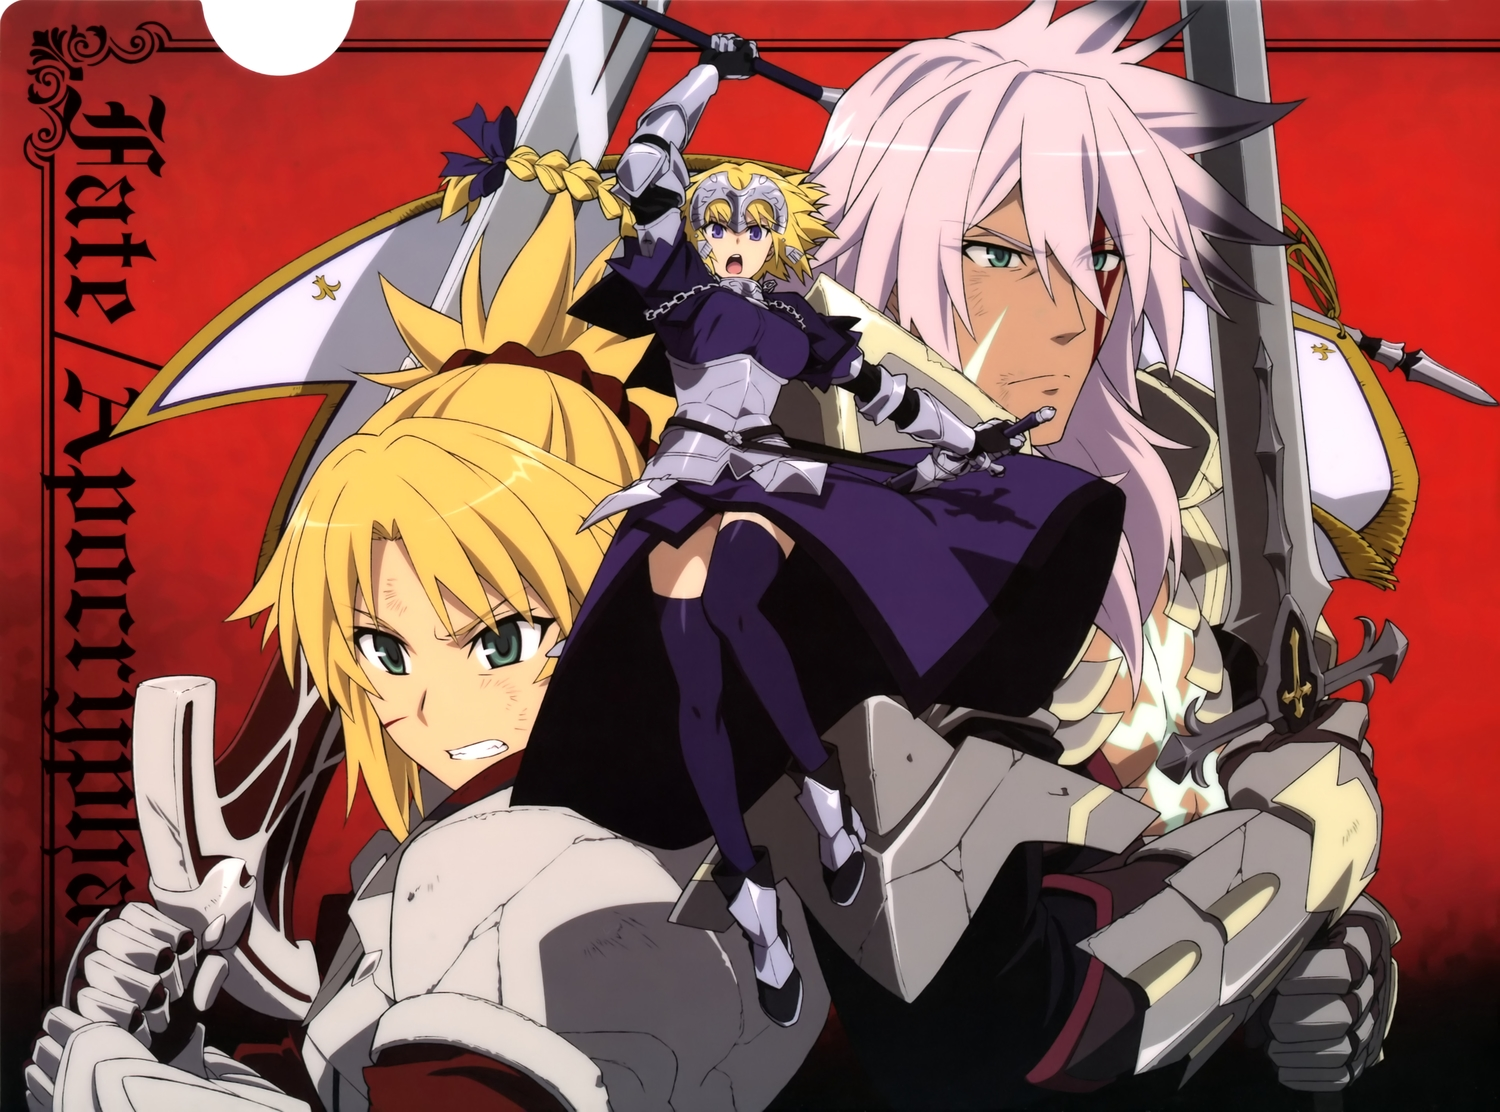 armor blonde_hair braids chain elbow_gloves fate/apocrypha fate_(series) gloves green_eyes jeanne_d'arc_(fate) long_hair male mordred ponytail purple_eyes scan siegfried spear sword tagme_(artist) weapon